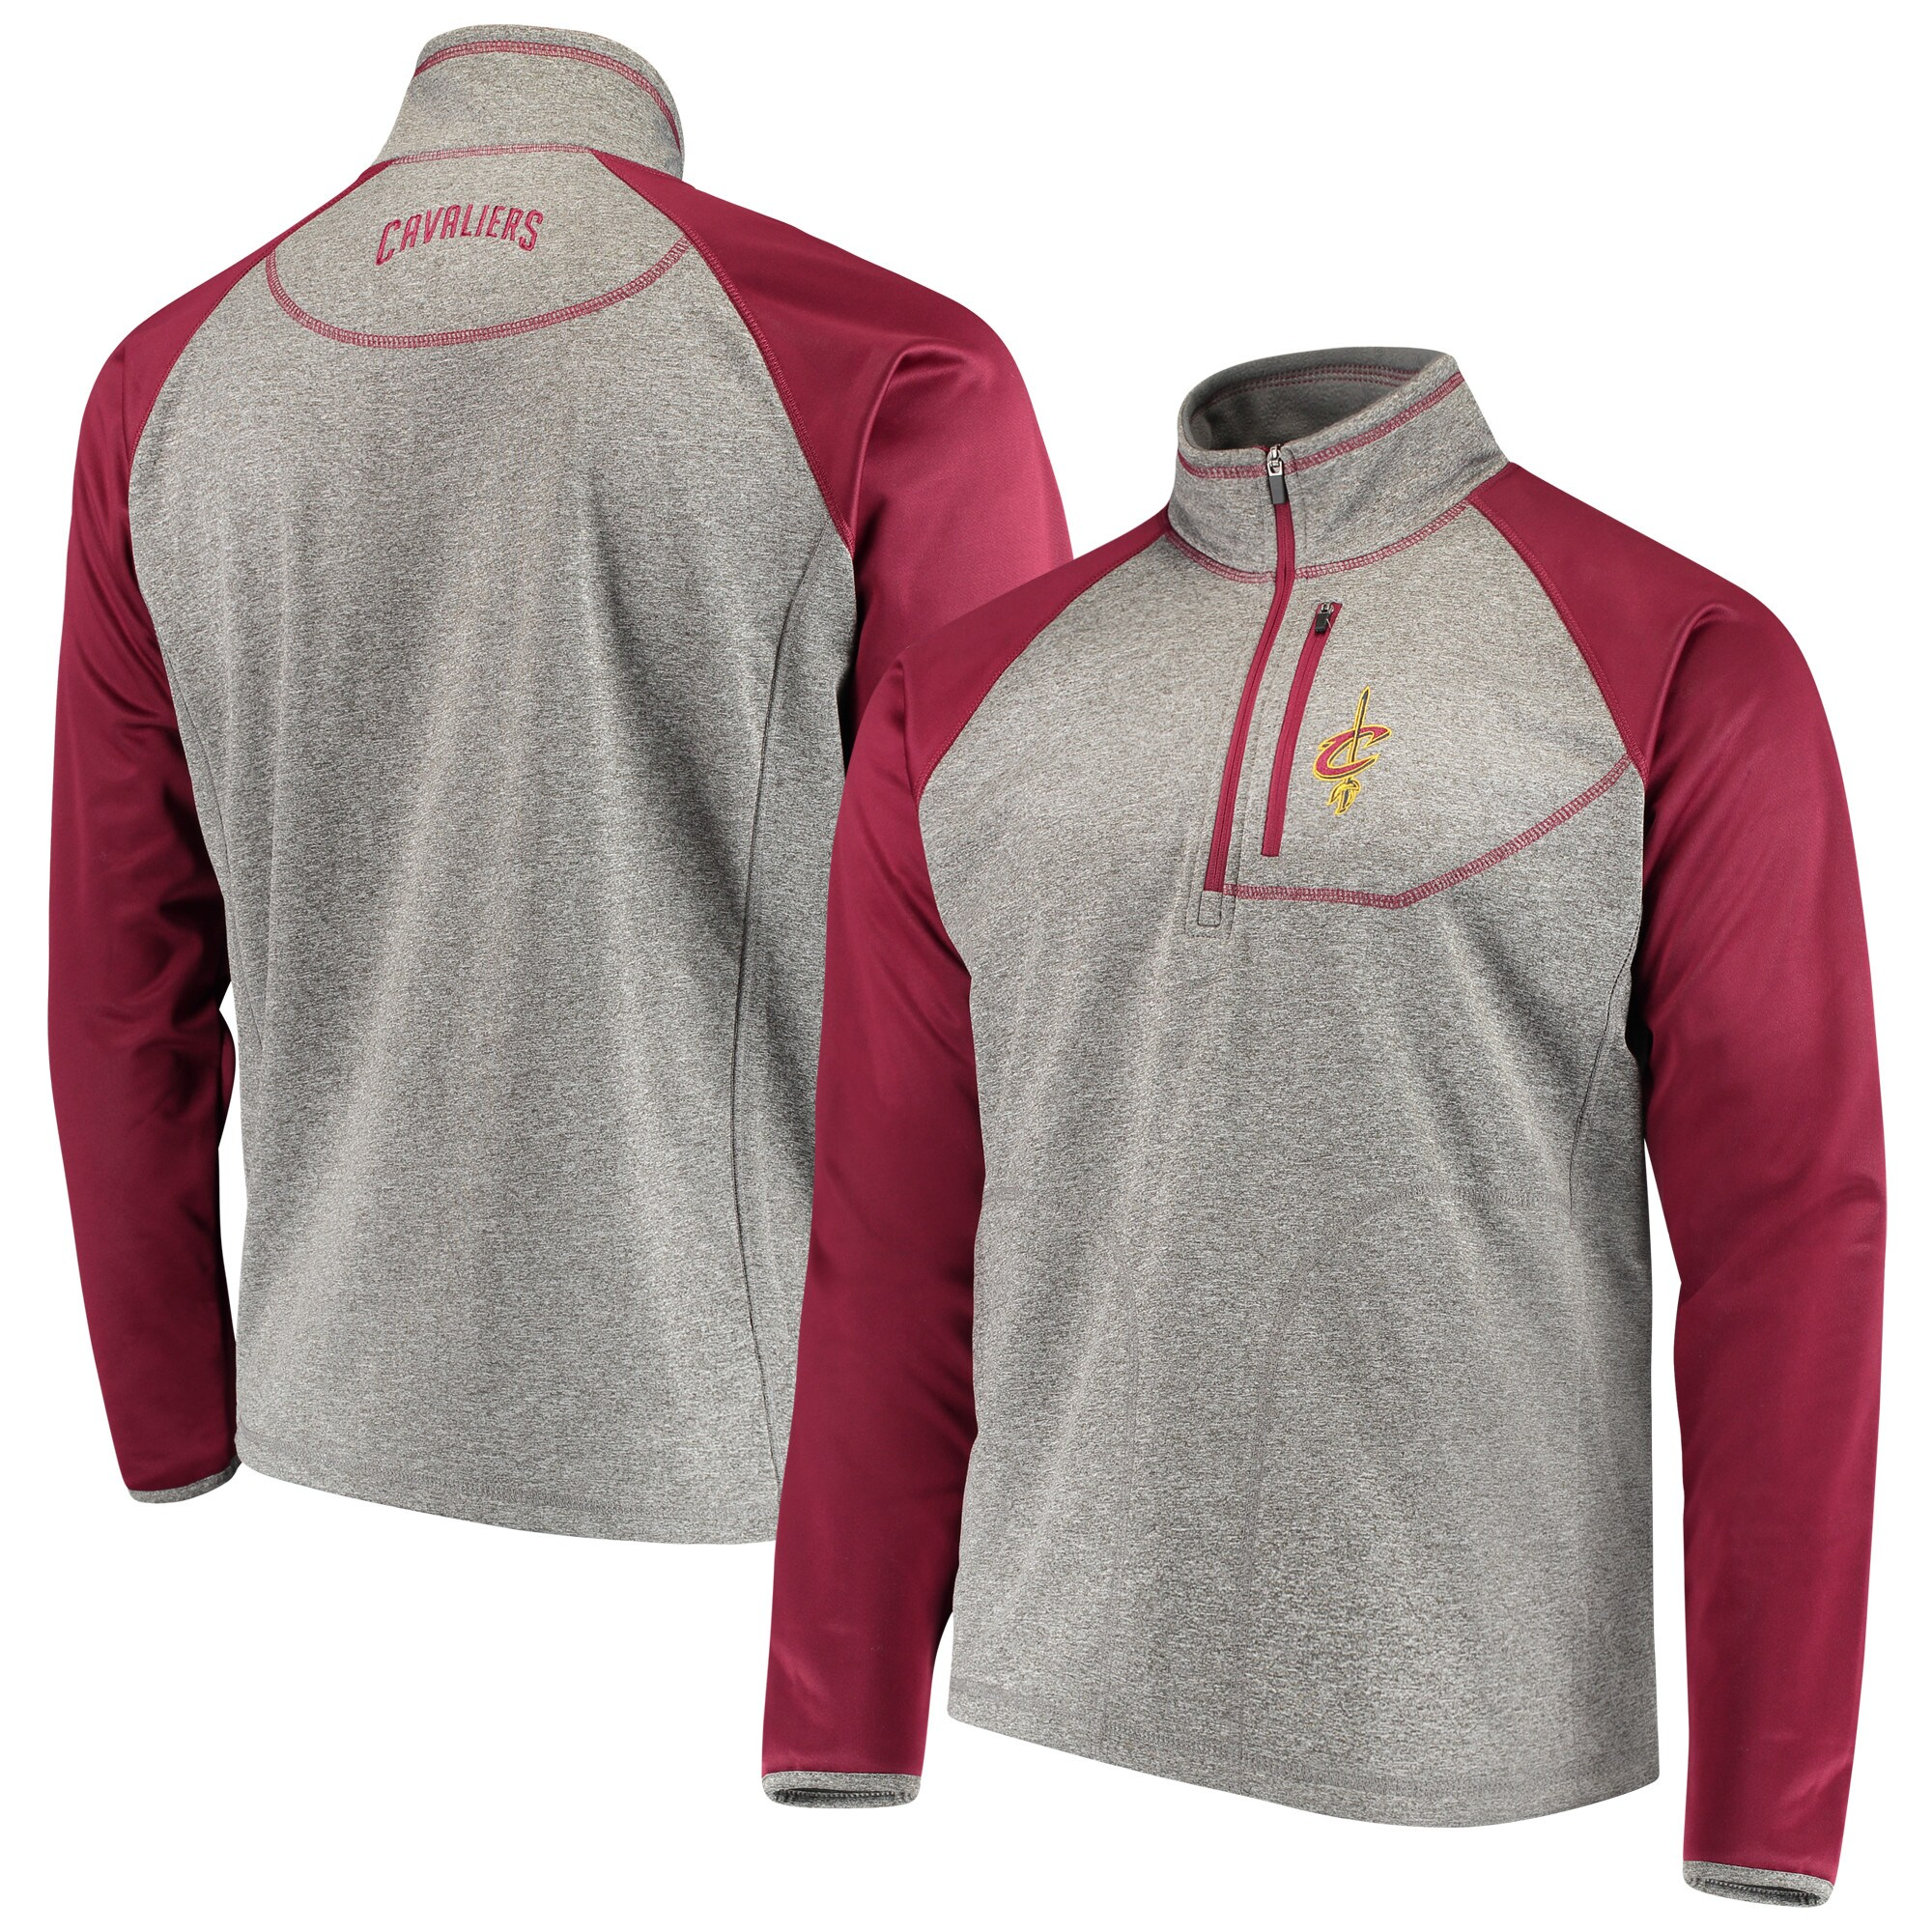 Cleveland Cavaliers G-III Sports by Carl Banks Mountain Trail Half-Zip Pullover Jacket - Gray/Wine